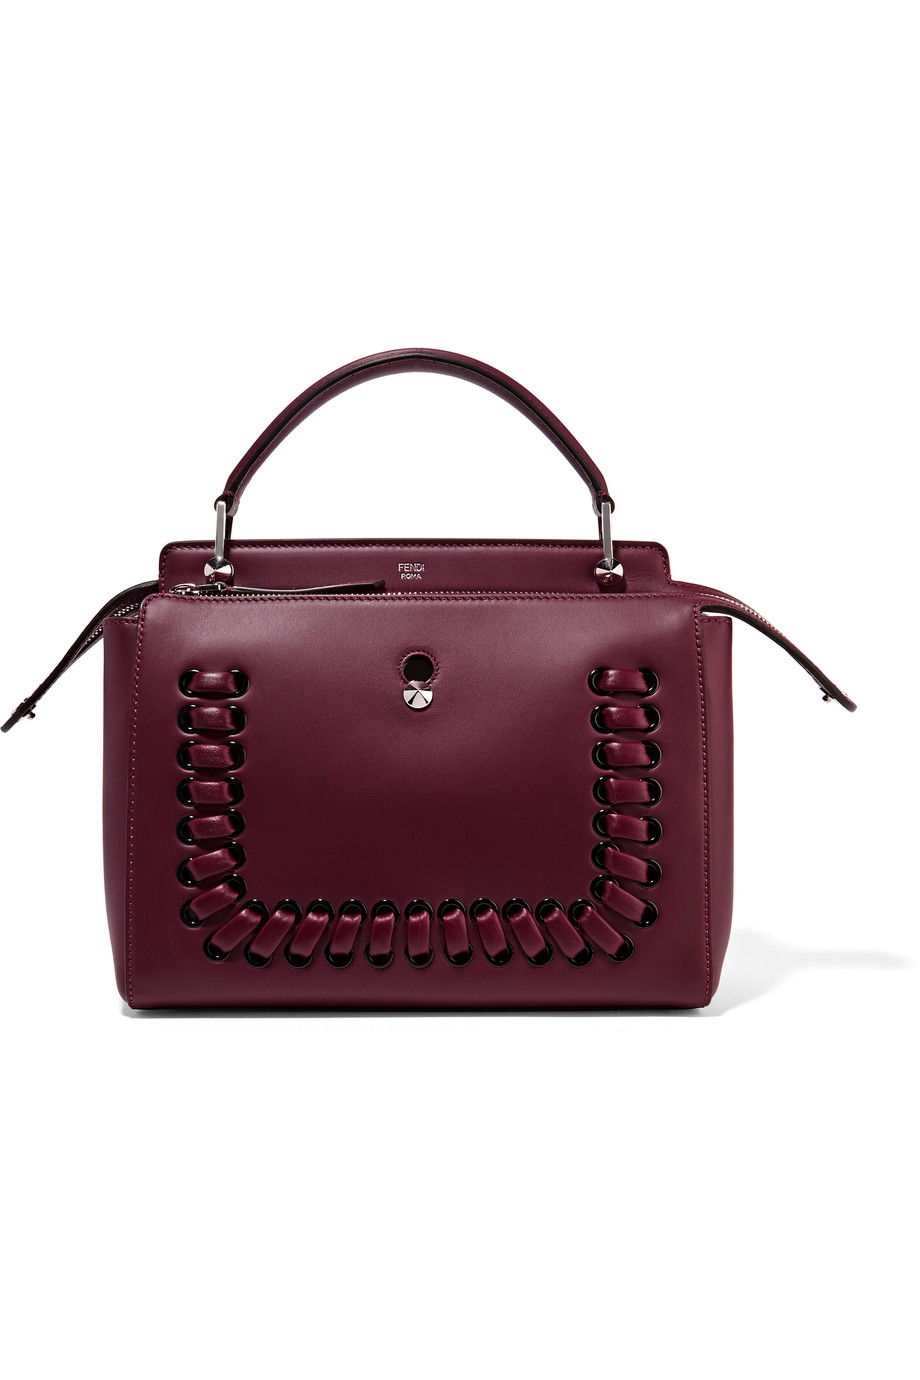 Fendi Dotcom Whipstiched Leather Tote, Burgundy, Women's